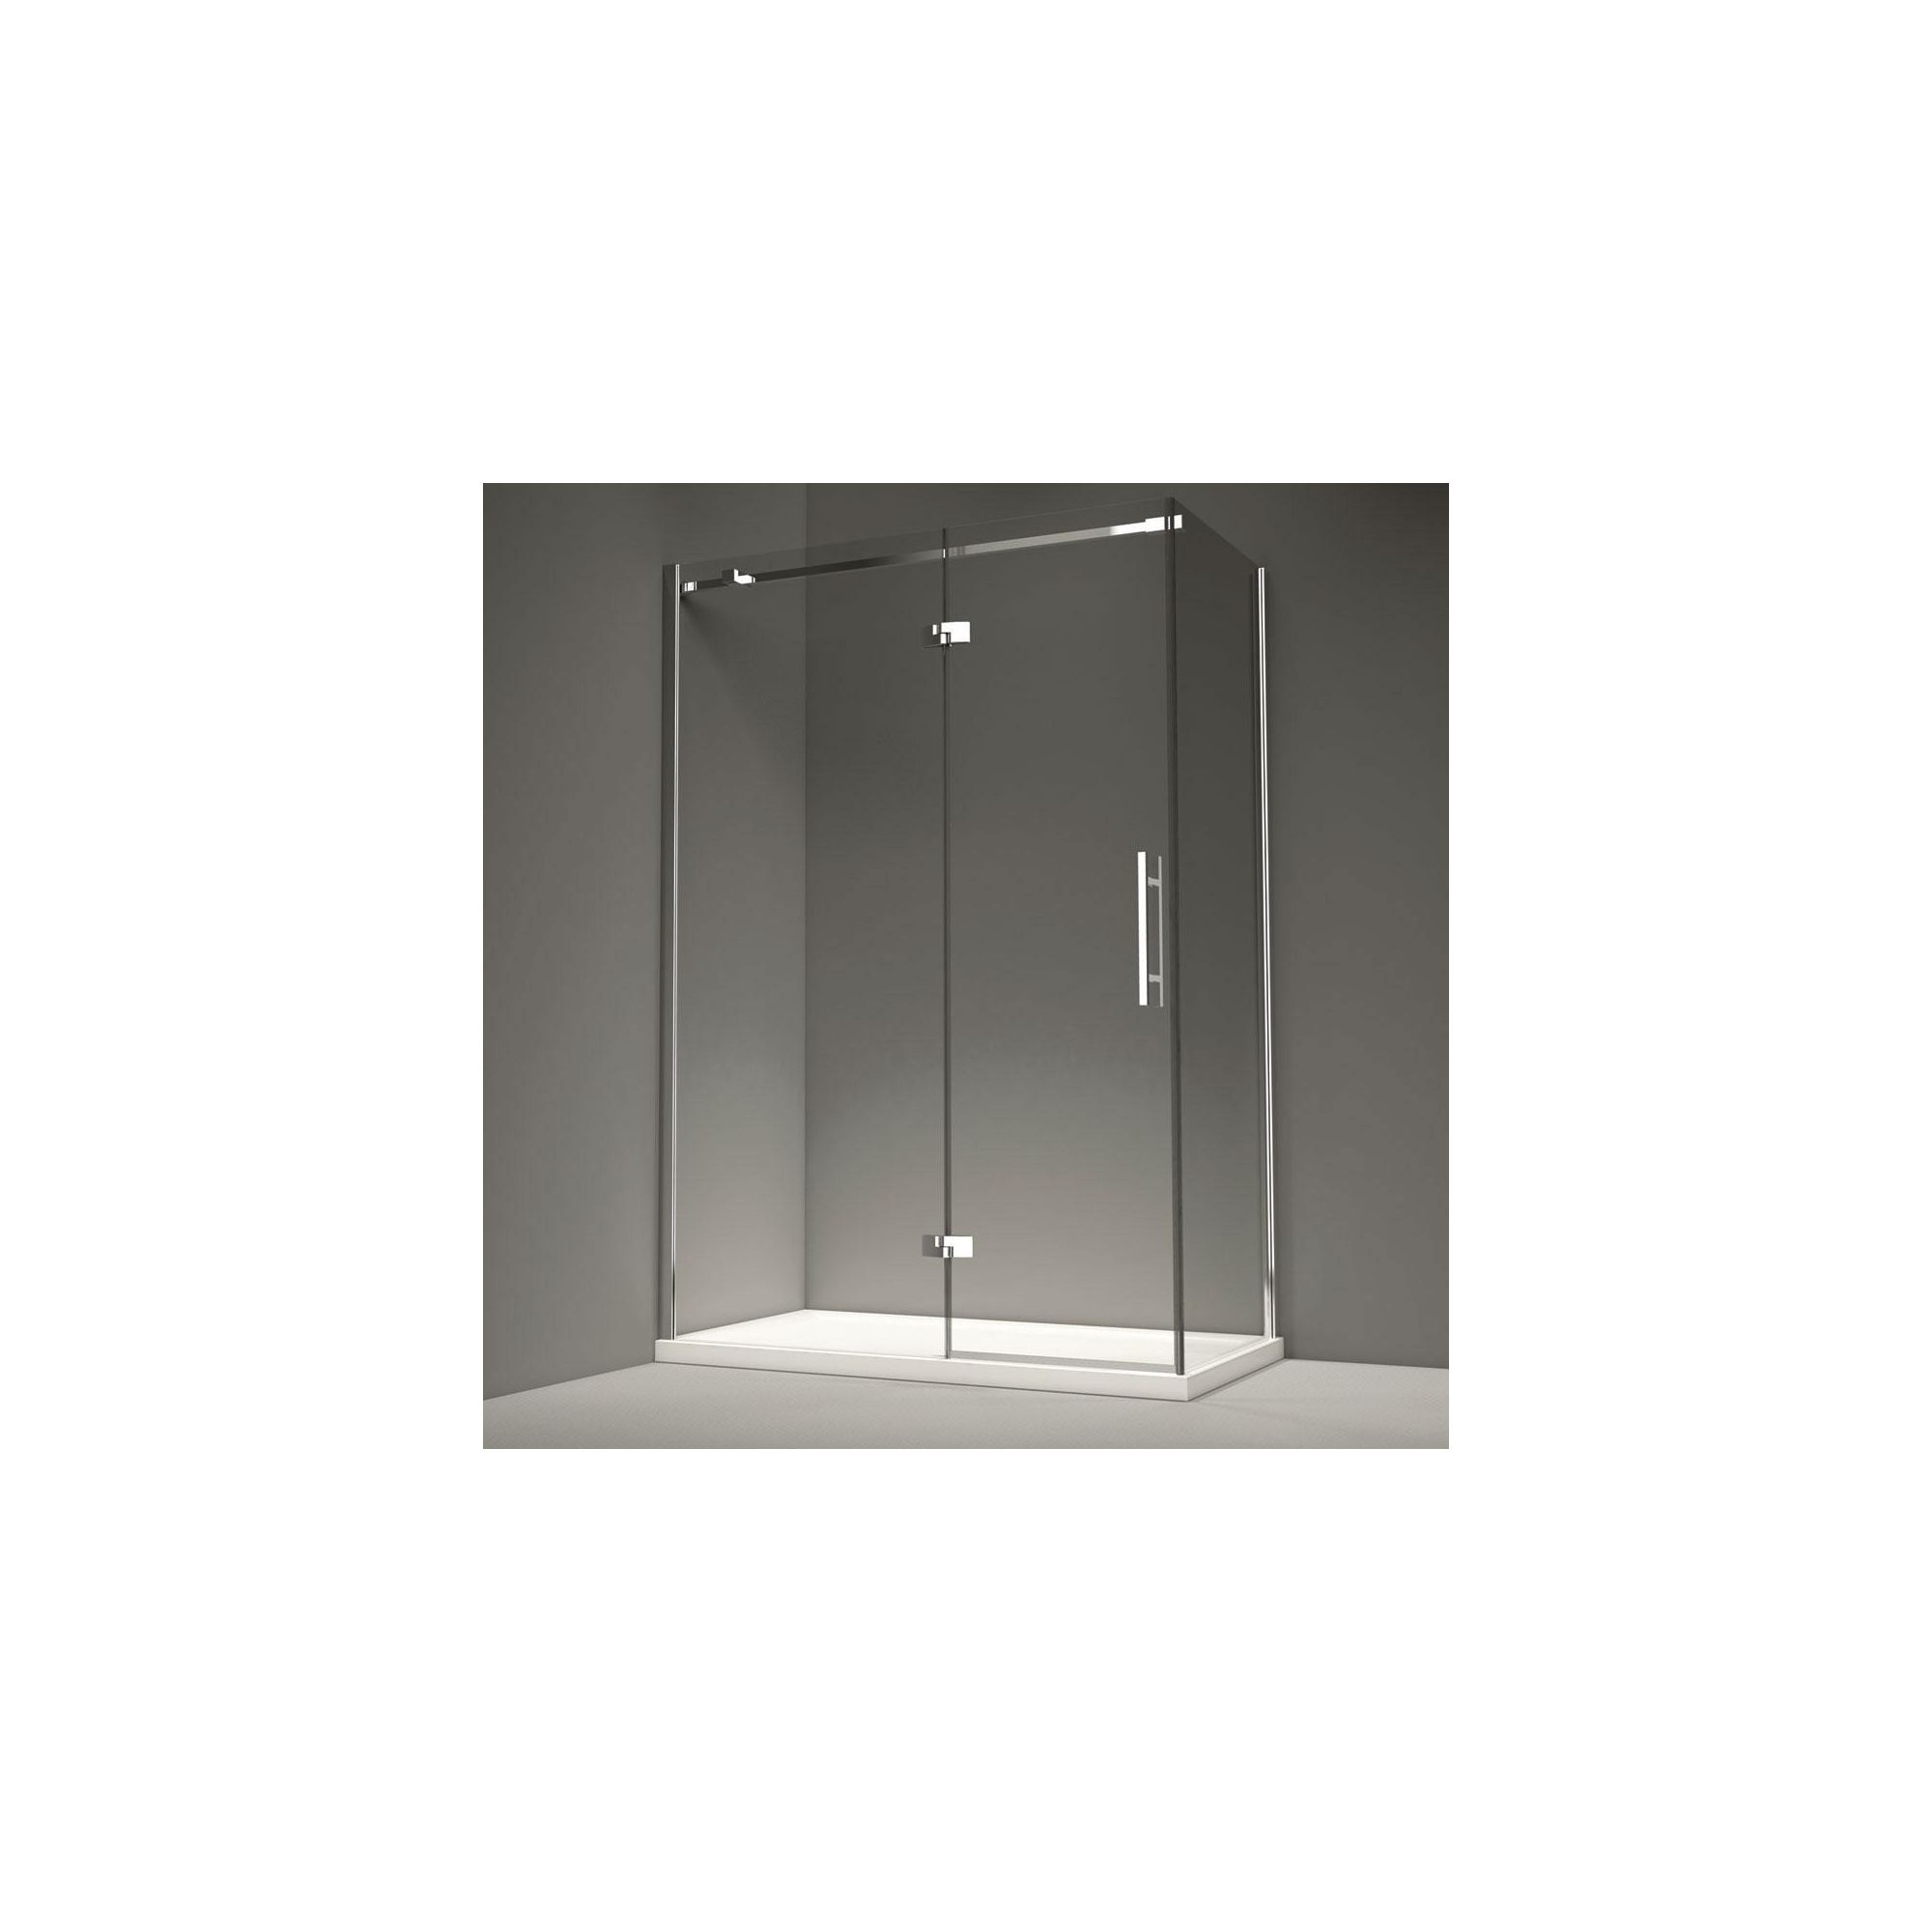 Merlyn Series 9 Inline Hinged Shower Door, 1000mm Wide, 8mm Glass, Left Handed at Tesco Direct